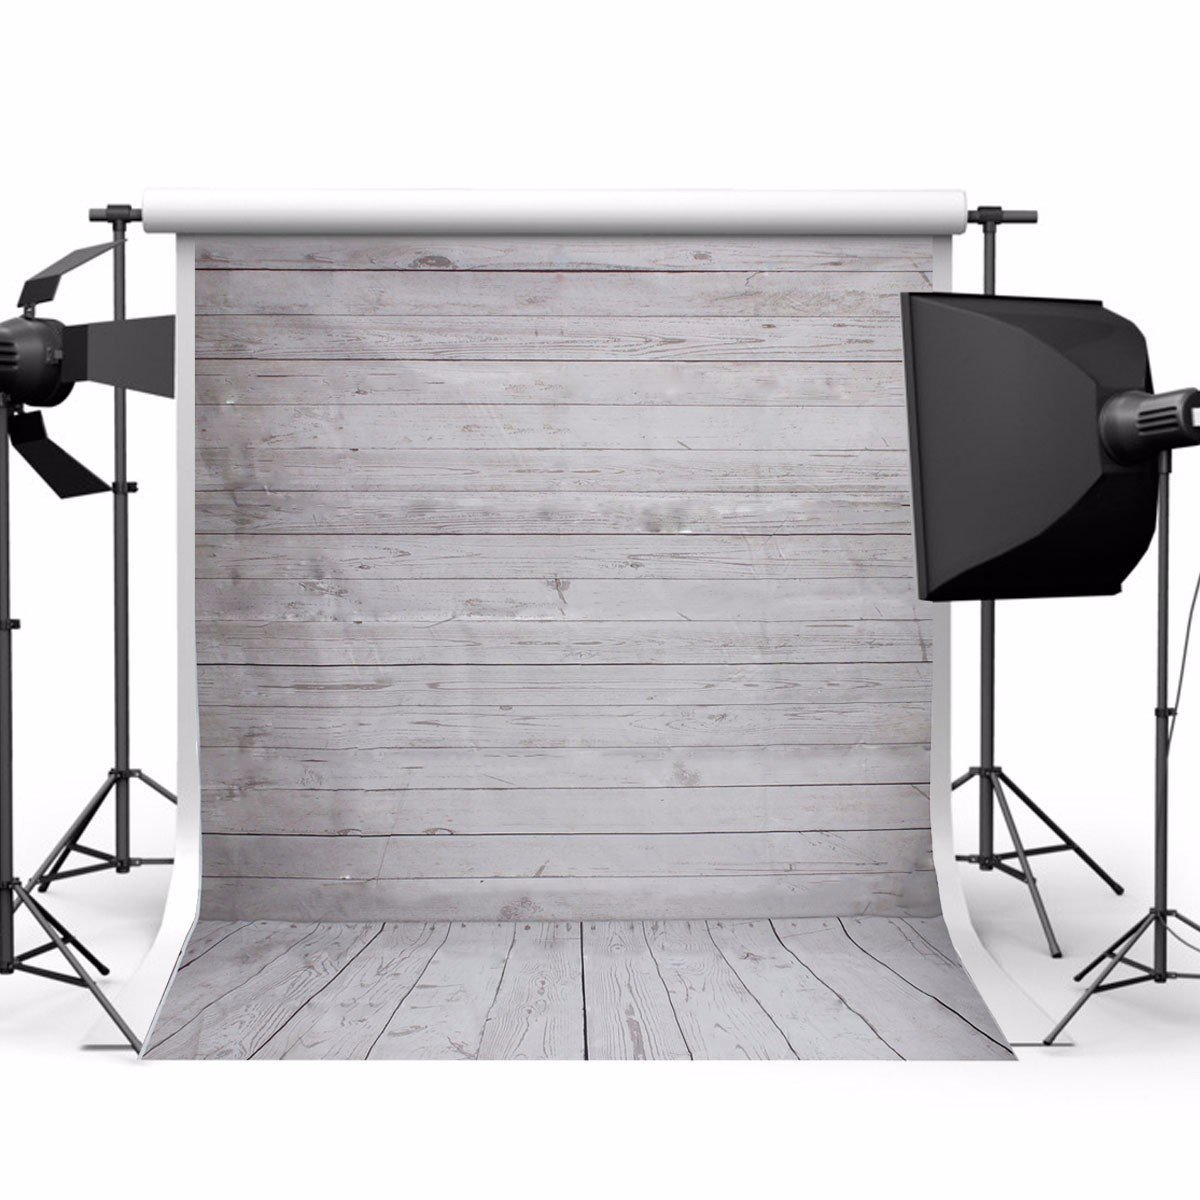 5x7ft Wood Wall Floor Studio Prop Photography Vinyl Background Photo Backdrop Best Price 10x10ft vinyl custom wood grain photography backdrops prop studio background tmw 20191 page 4 page 5